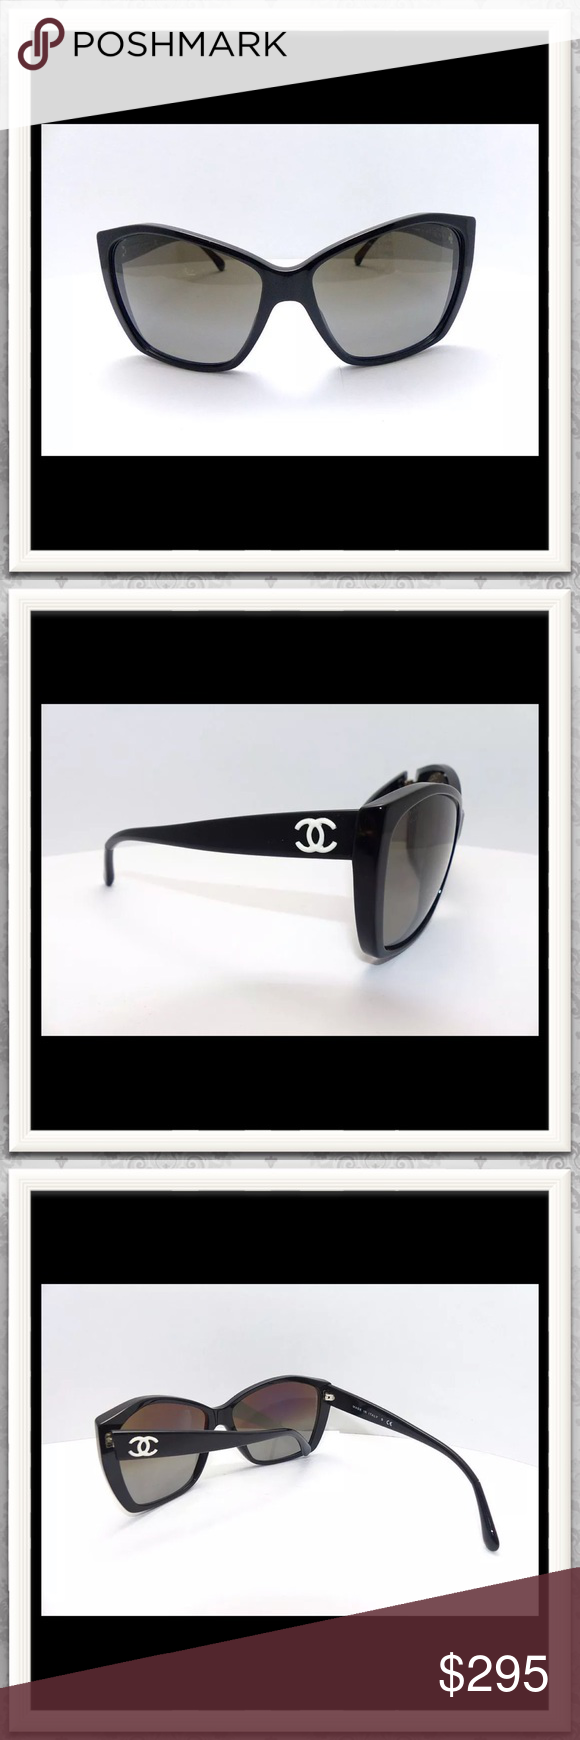 de06961b8b188 Chanel Sunglasses Model 5203 5203 Black Glitter Chanel Sunglasses. These  are in great condition. Beautiful sunnies. CHANEL Accessories Sunglasses